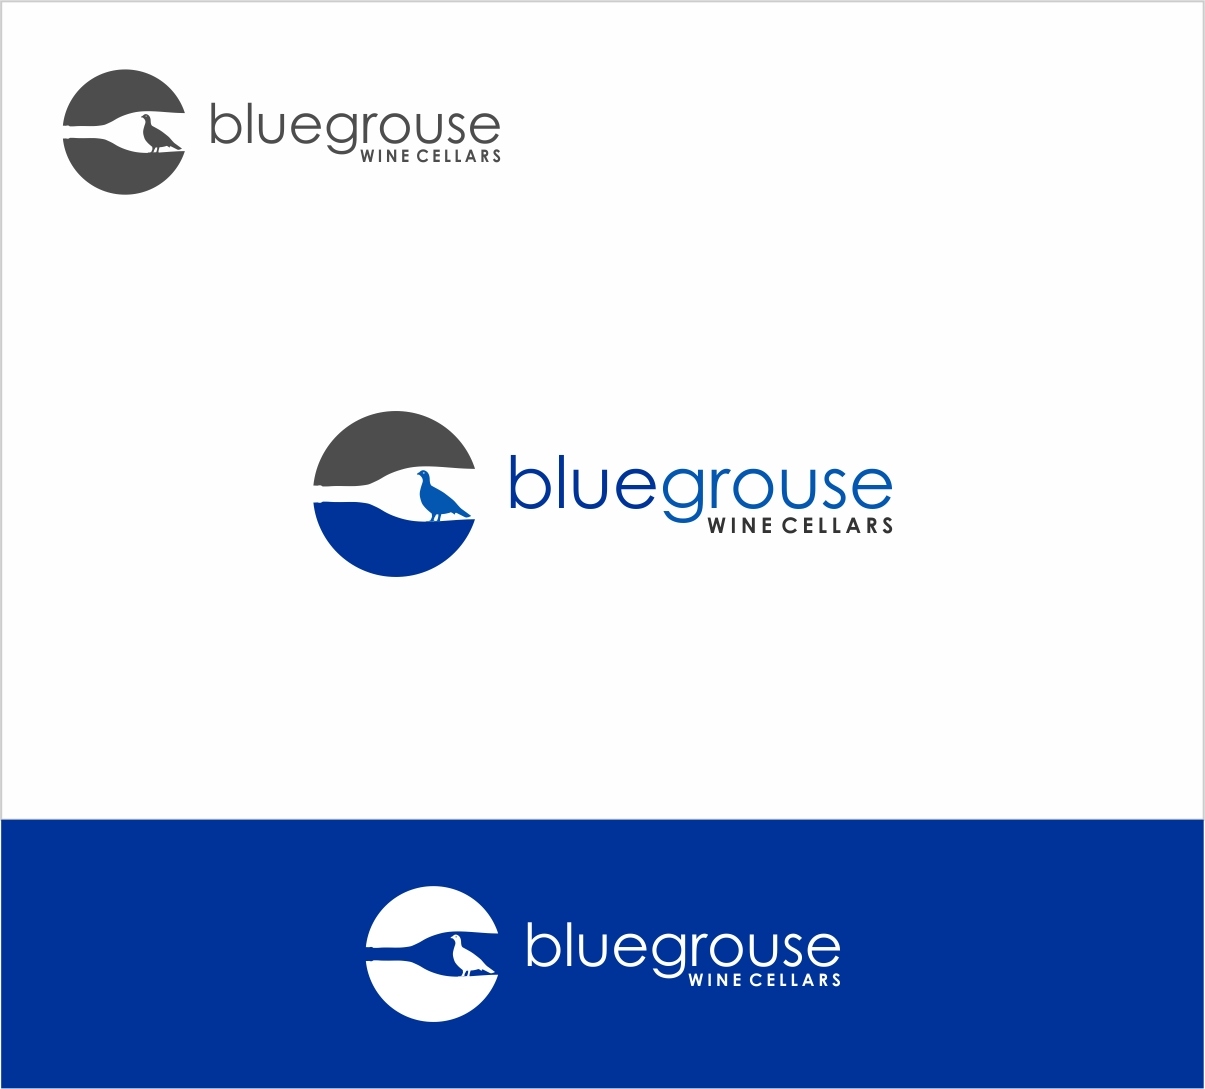 Logo Design by haidu - Entry No. 142 in the Logo Design Contest Creative Logo Design for Blue Grouse Wine Cellars.